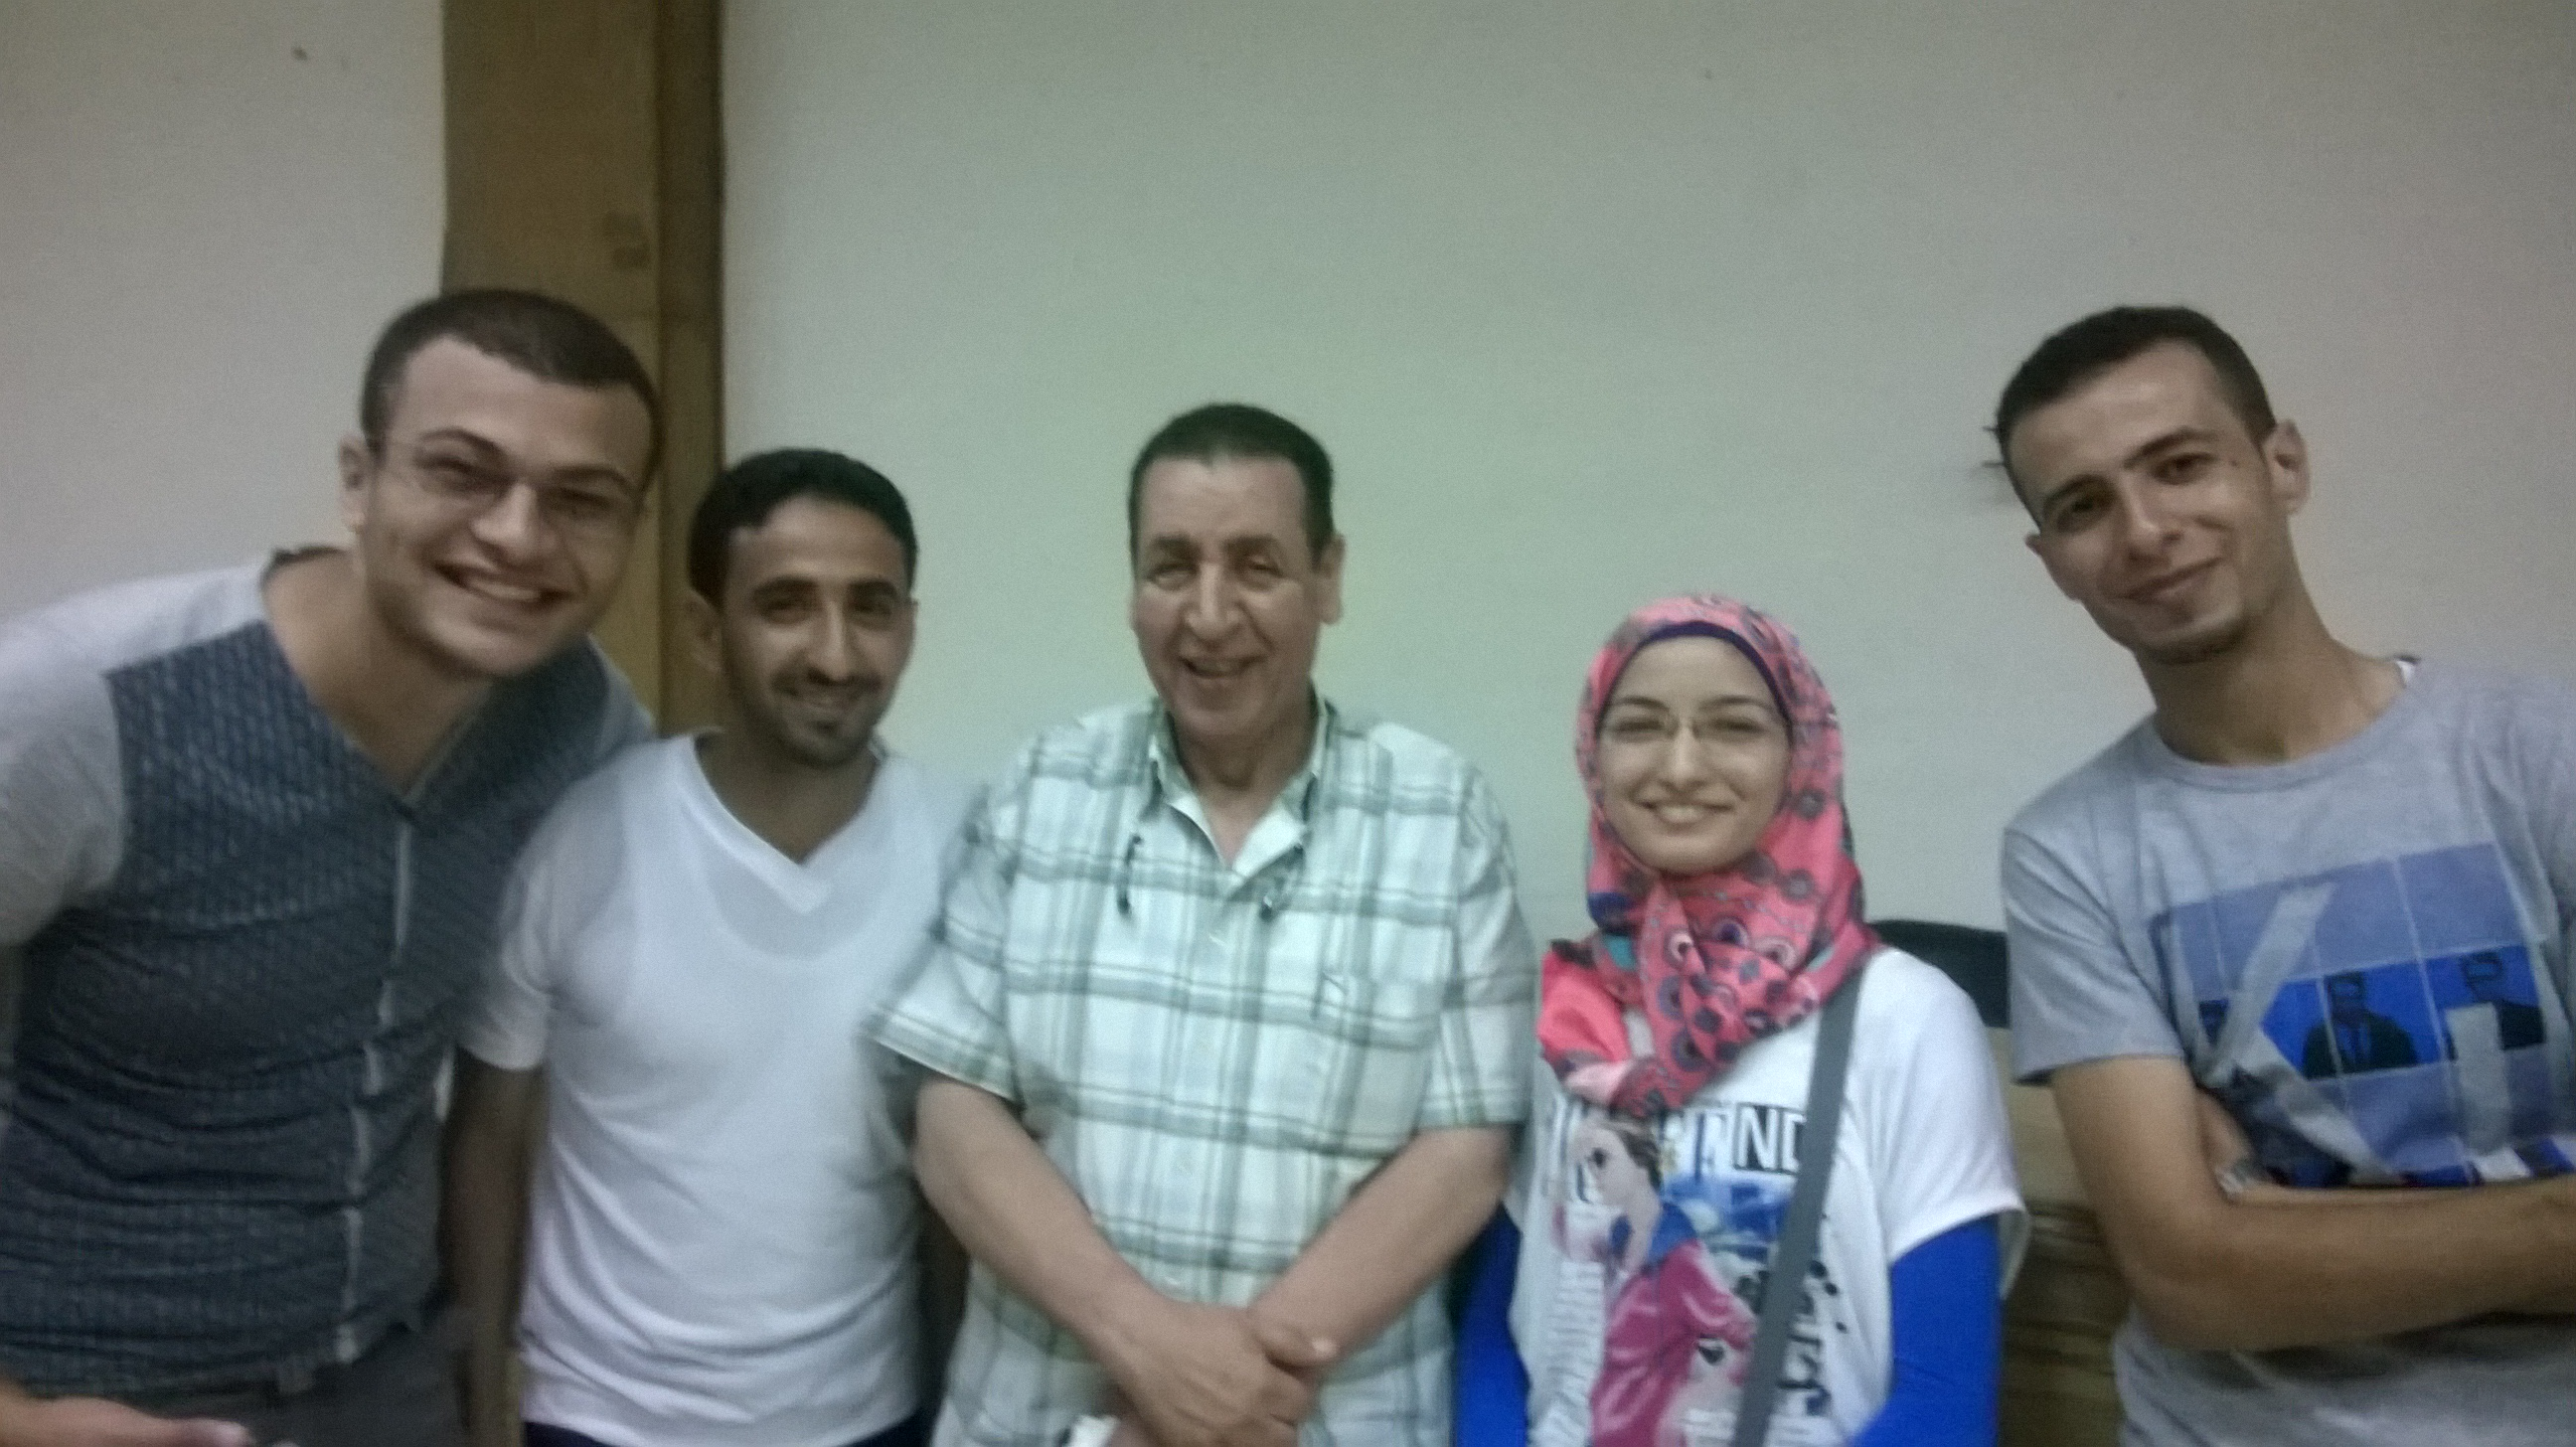 Student / Aya asla in the delegation of Zagazig University to discuss the new student list